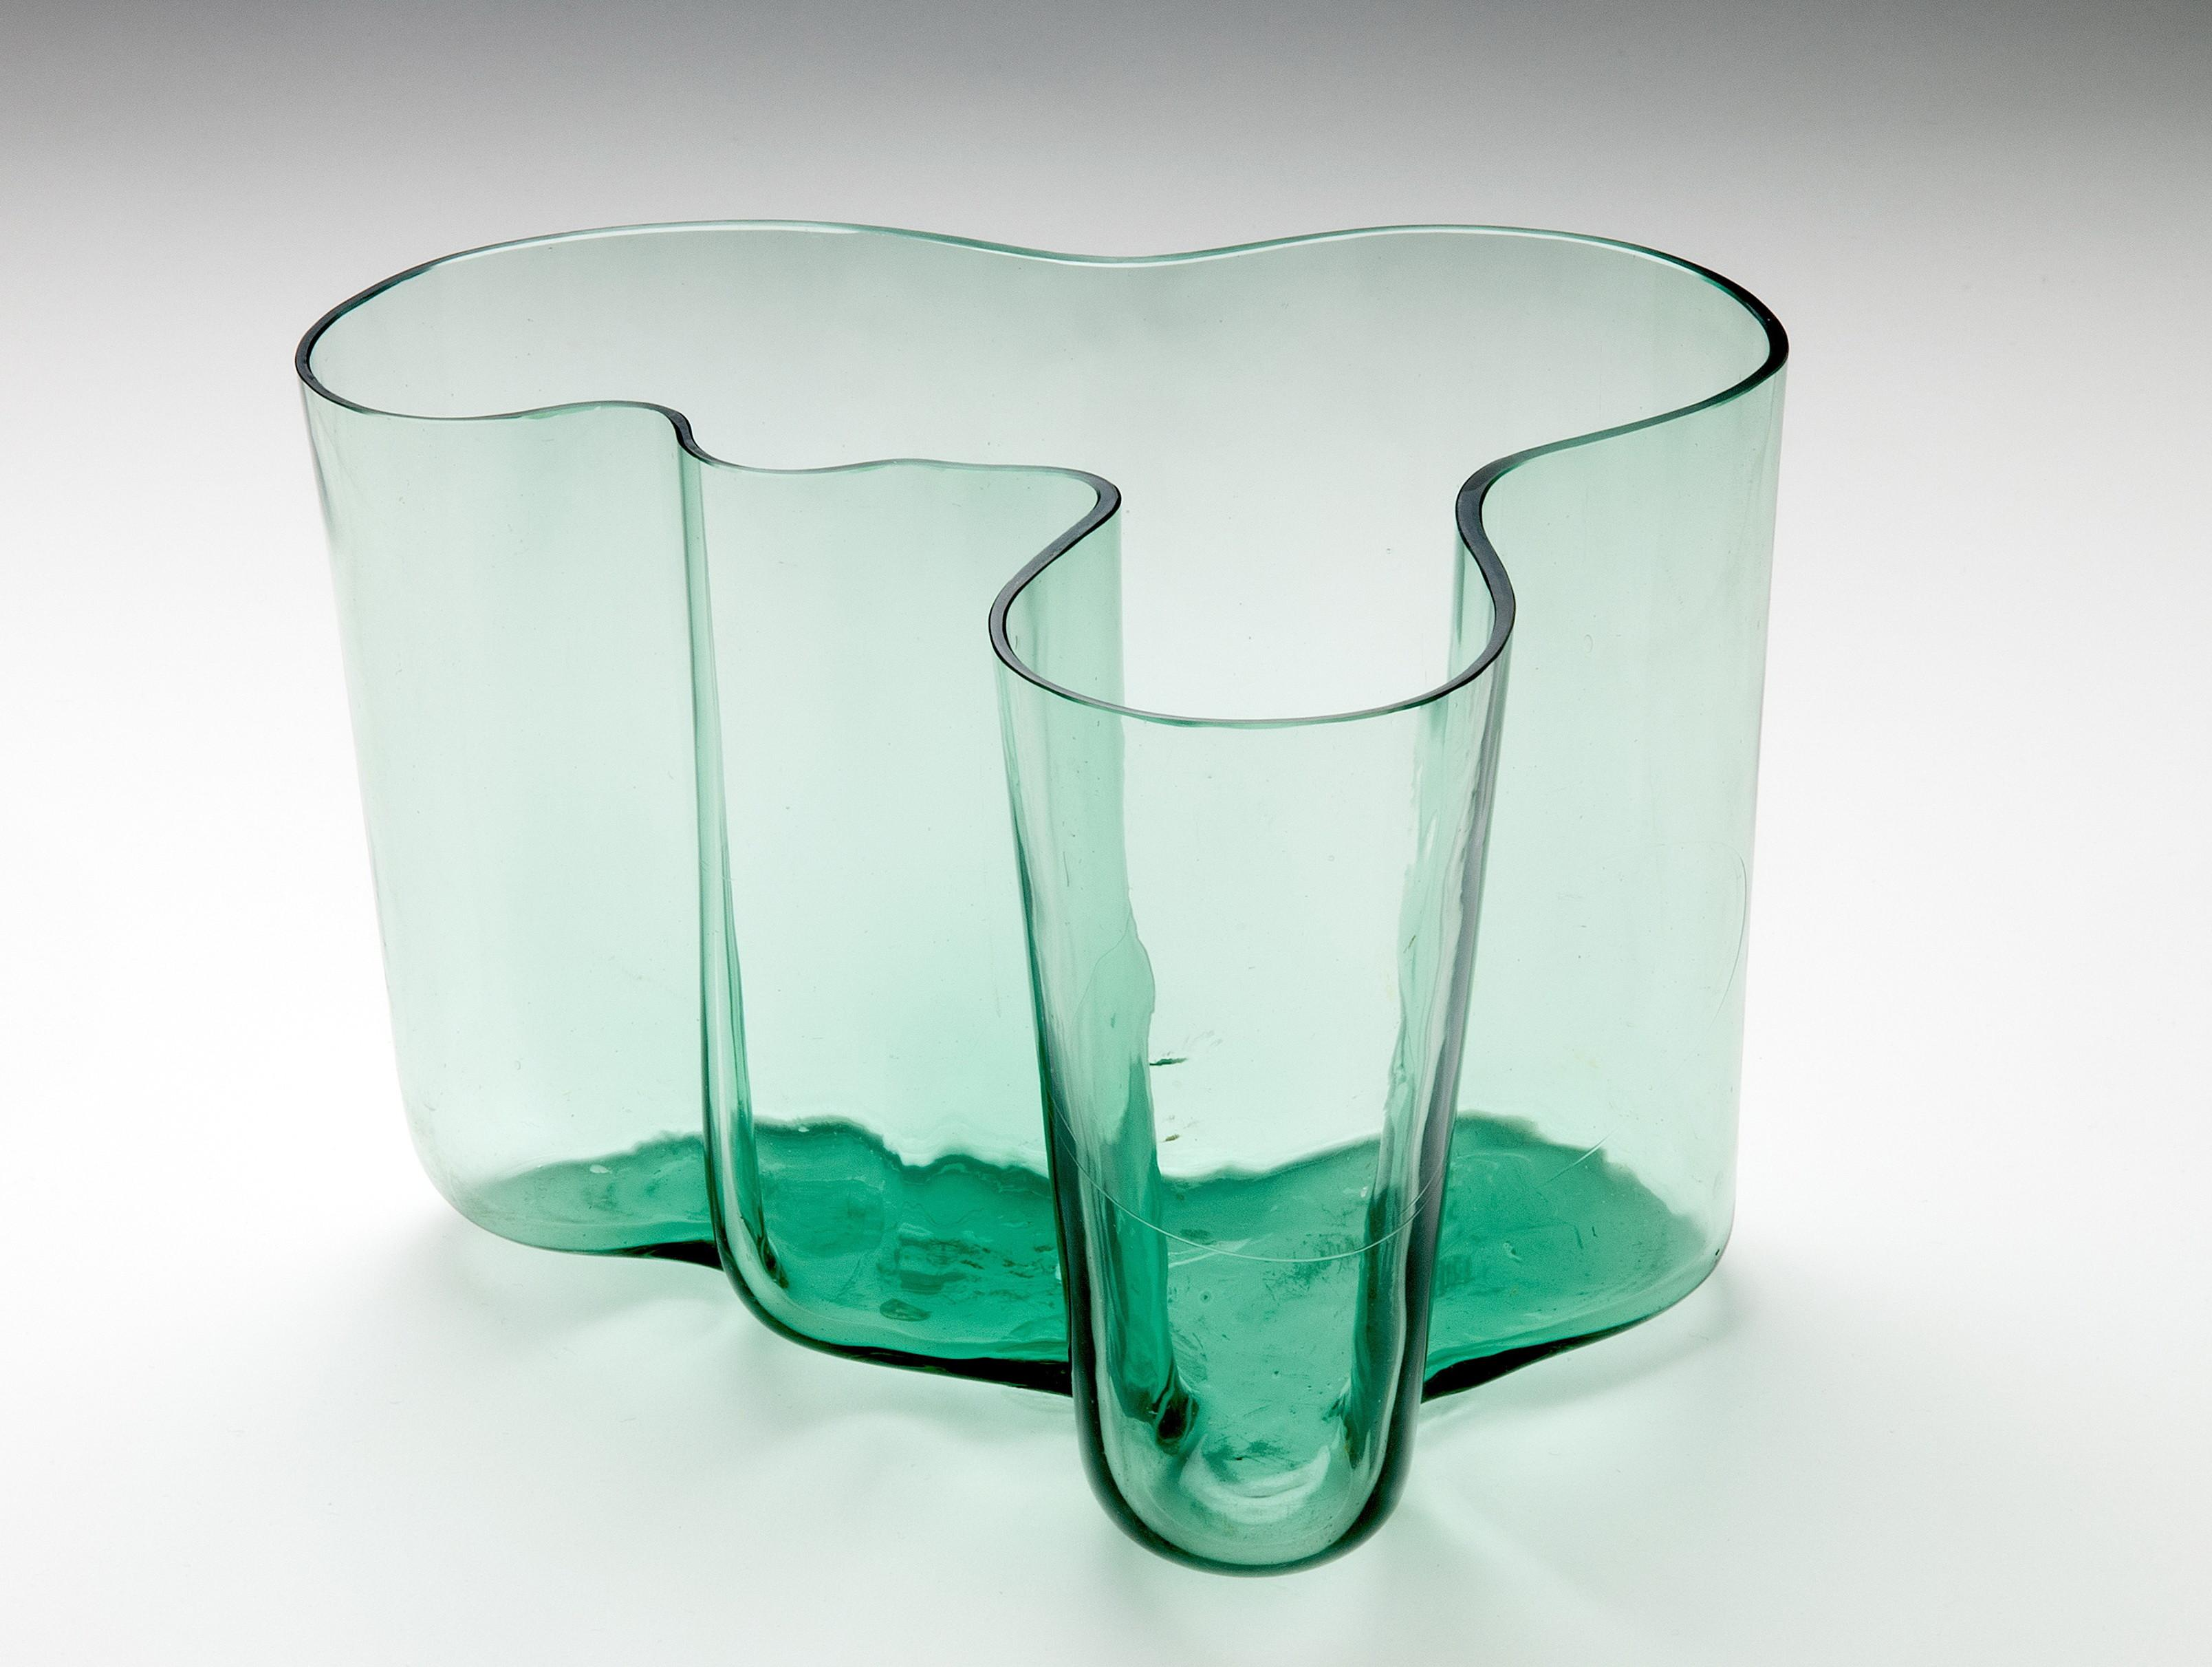 Alvar Aalto Vase Home Design Ideas